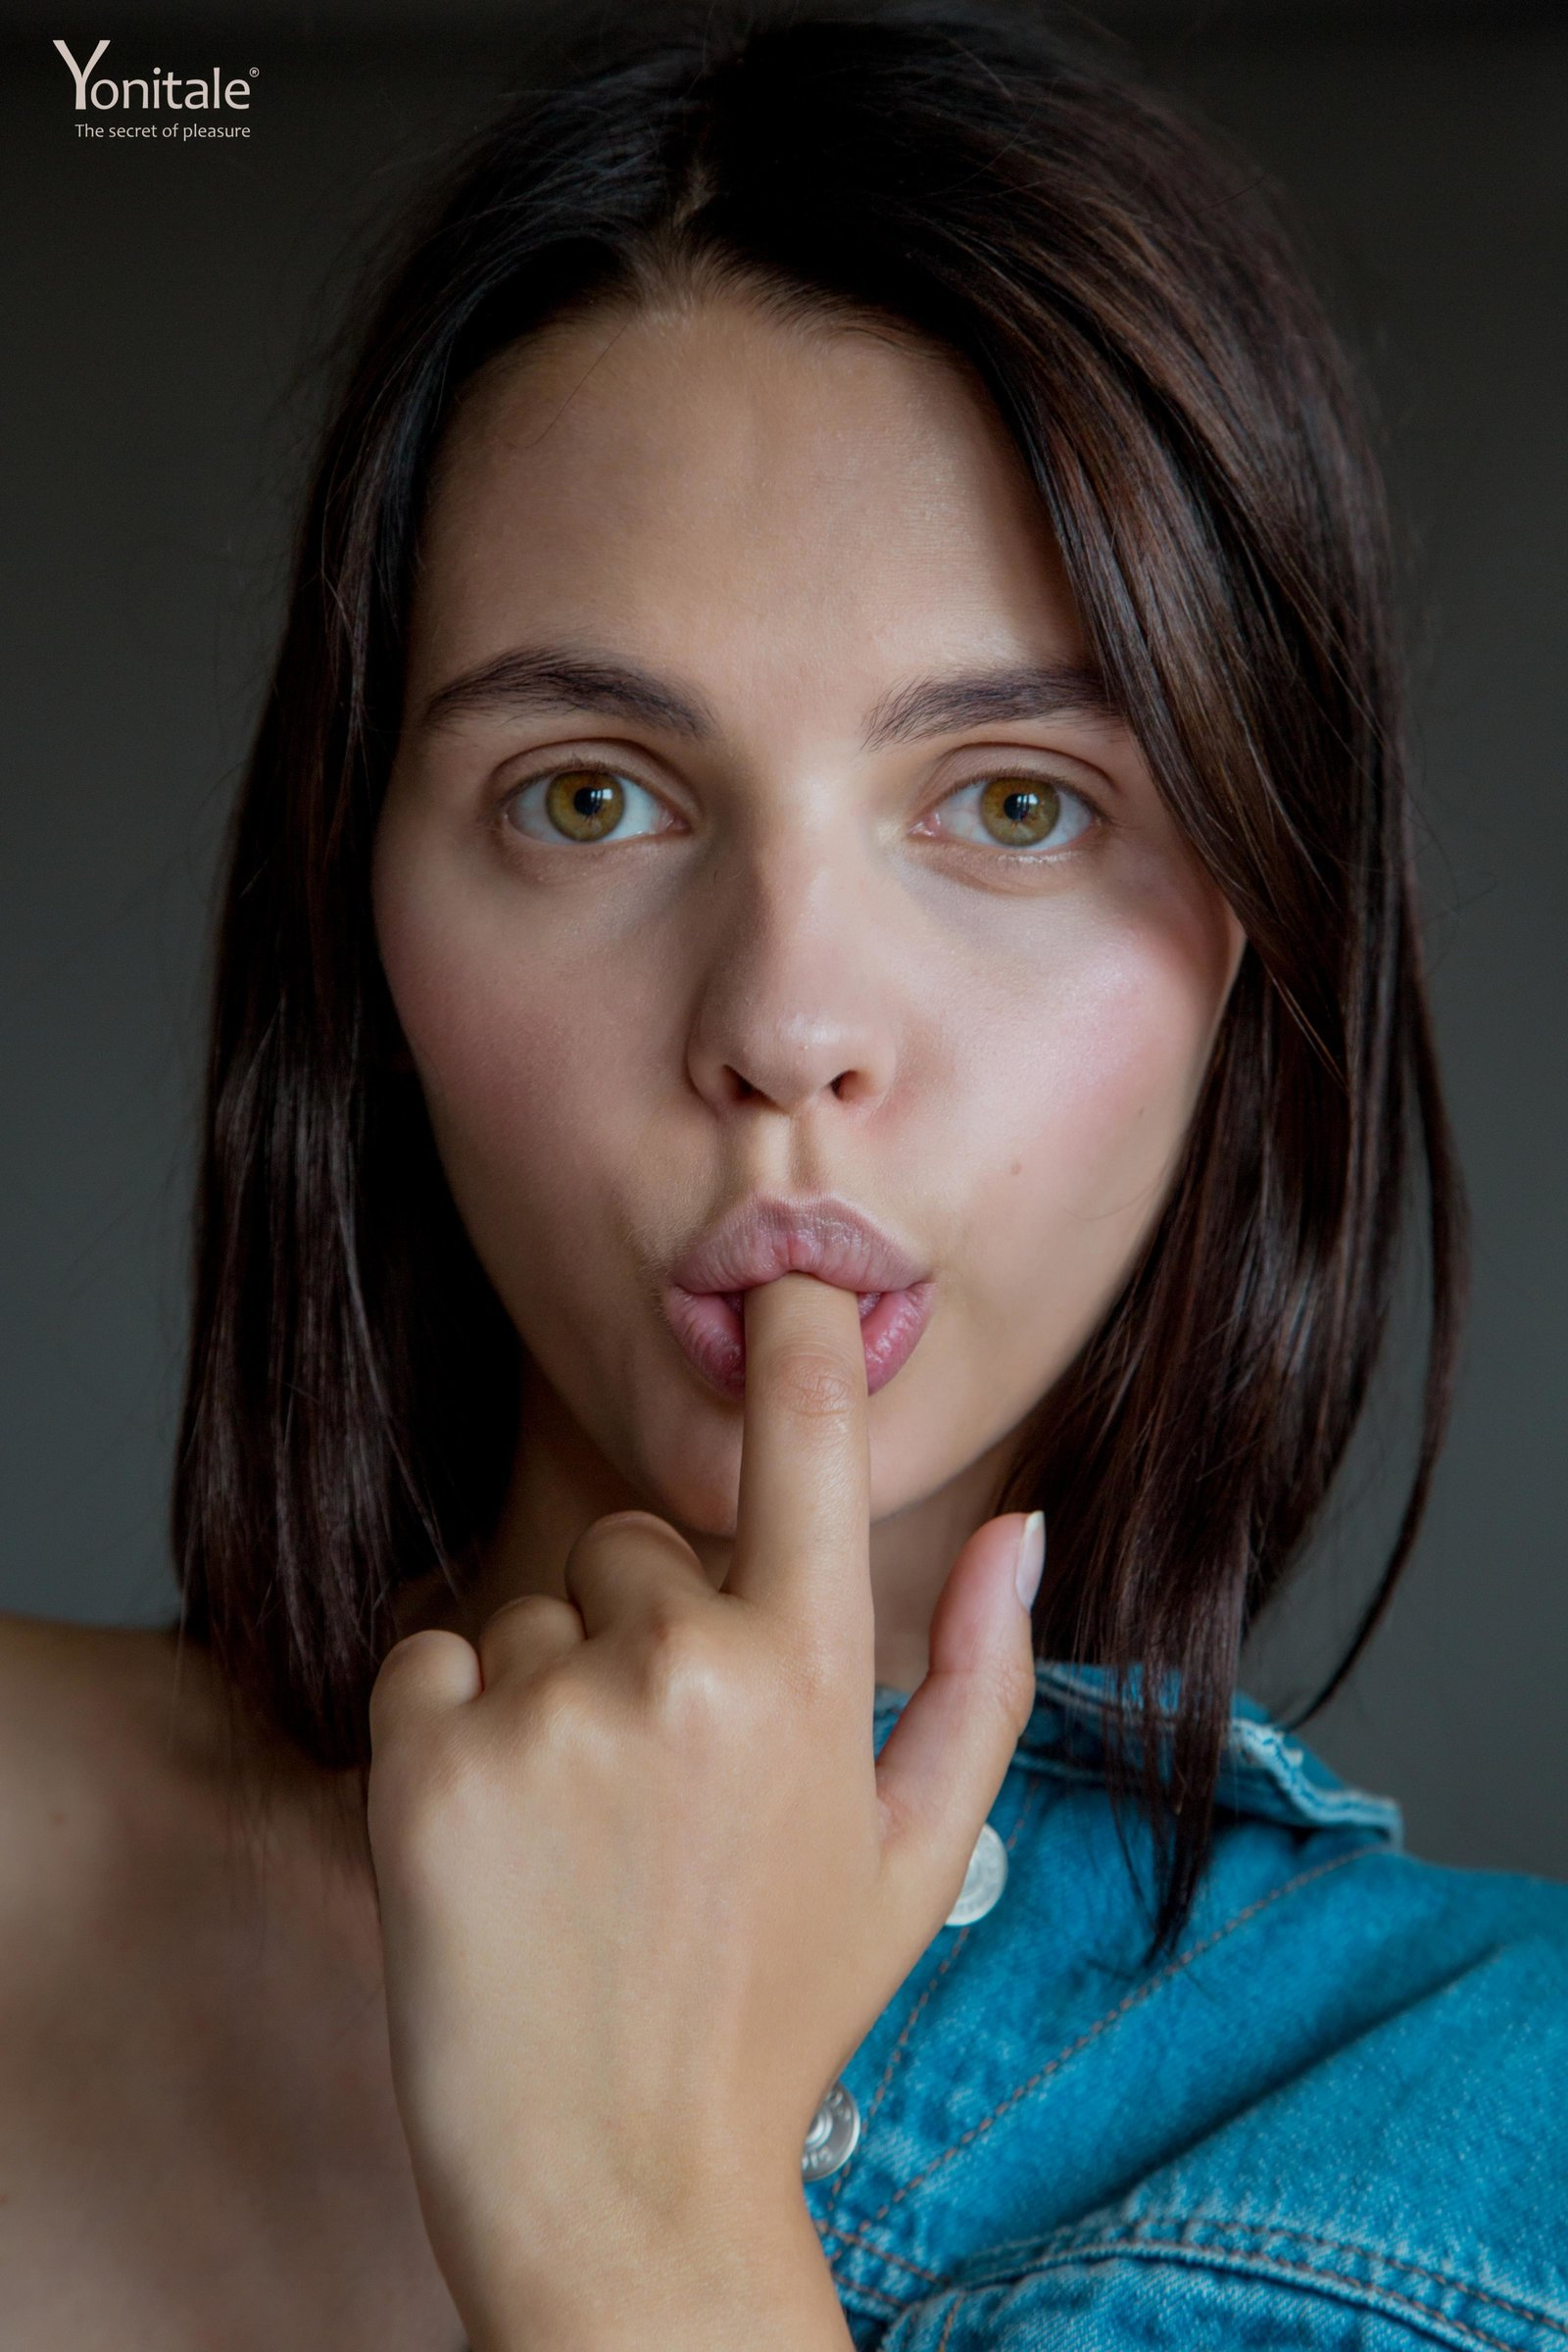 People 1600x2400 women model Lilit A Yonitale face closeup finger in mouth looking at viewer brunette portrait portrait display vertical women indoors green eyes